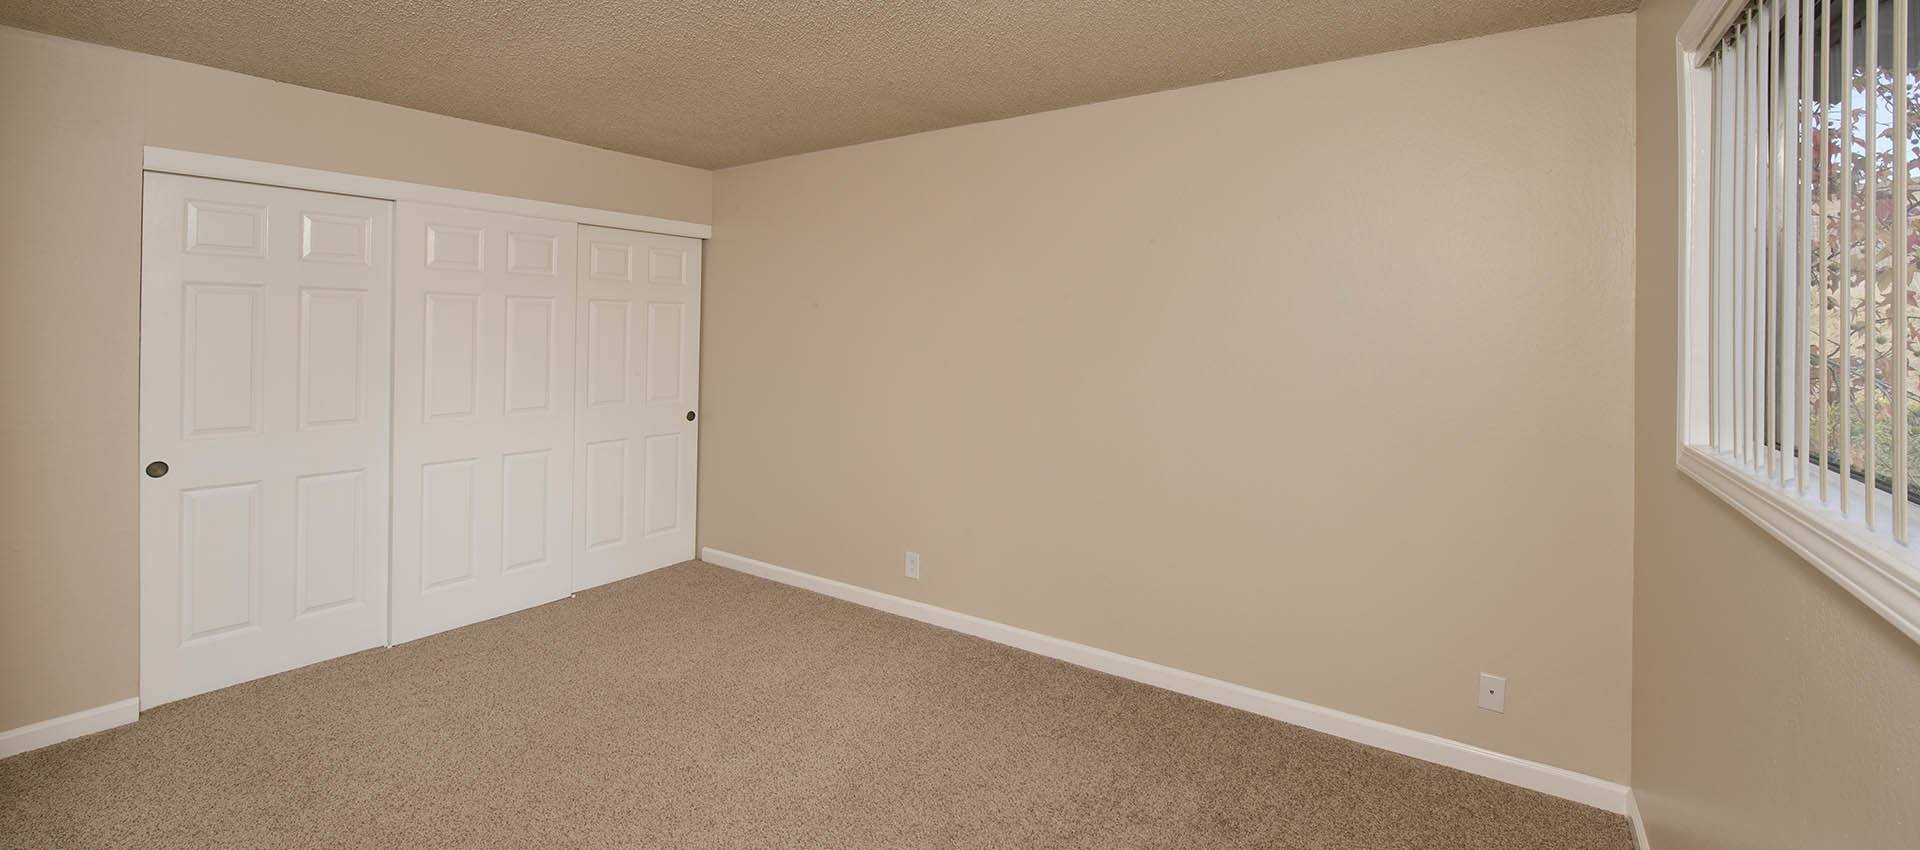 Spacious Bedroom With Large Closet at Shadow Oaks Apartment Homes in Cupertino